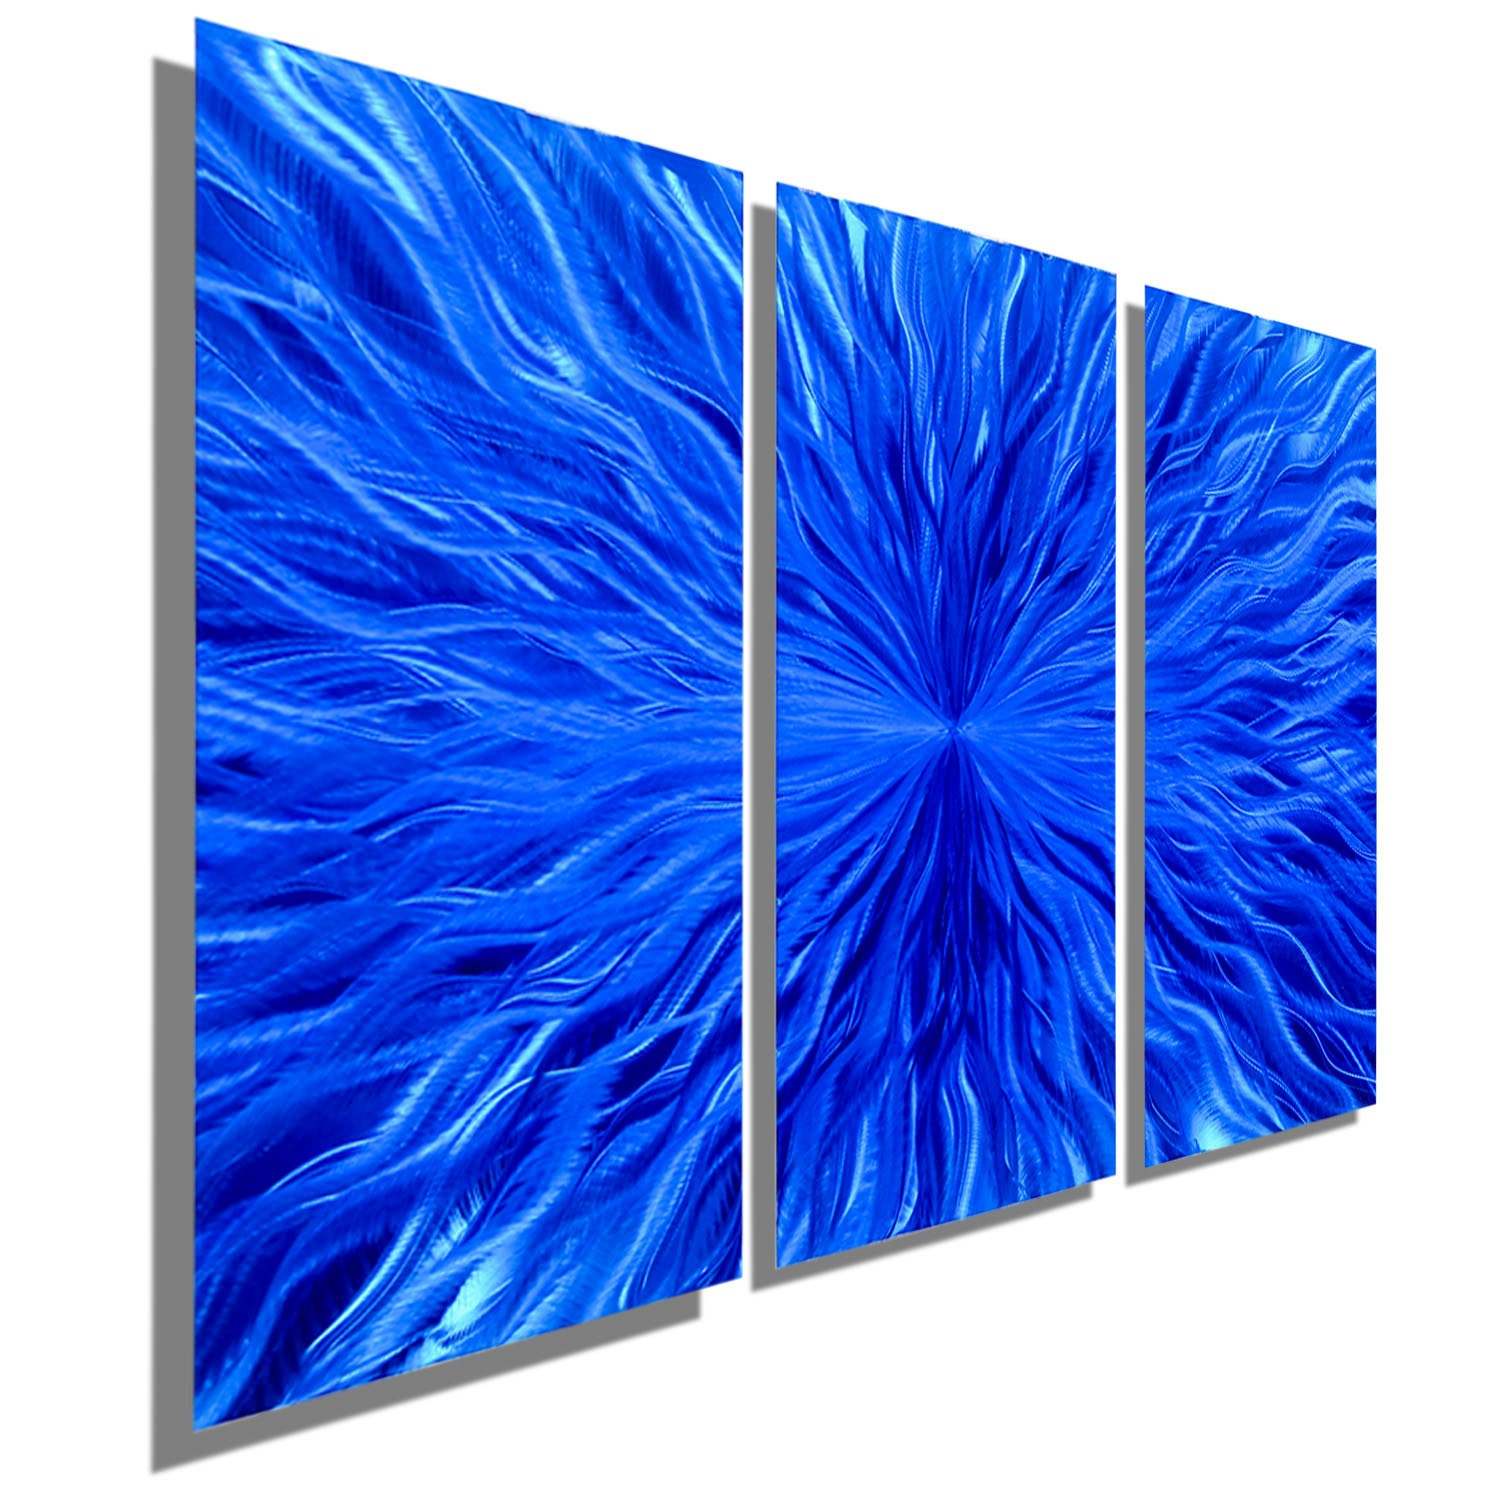 Blue Metal Wall Art Awesome Multi Panel Contemporary Metal Wall Decor In Blue Modern Decorating Inspiration